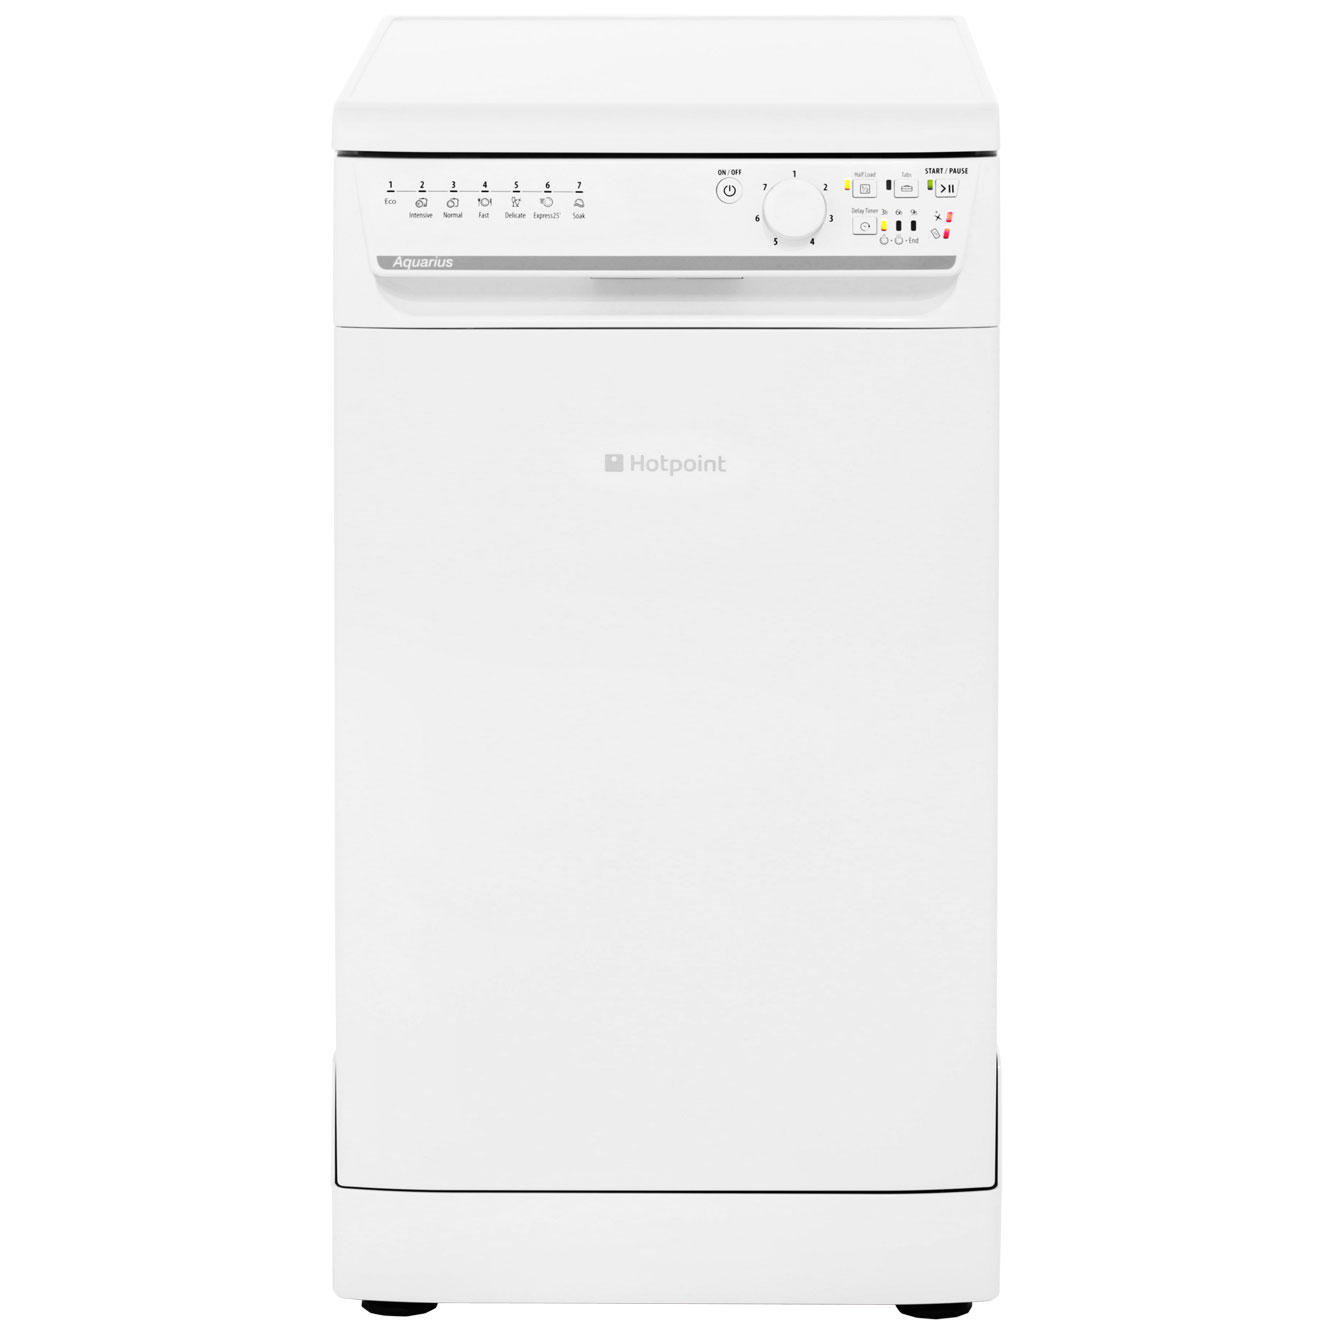 hotpoint aquarius dishwasher troubleshooting guide